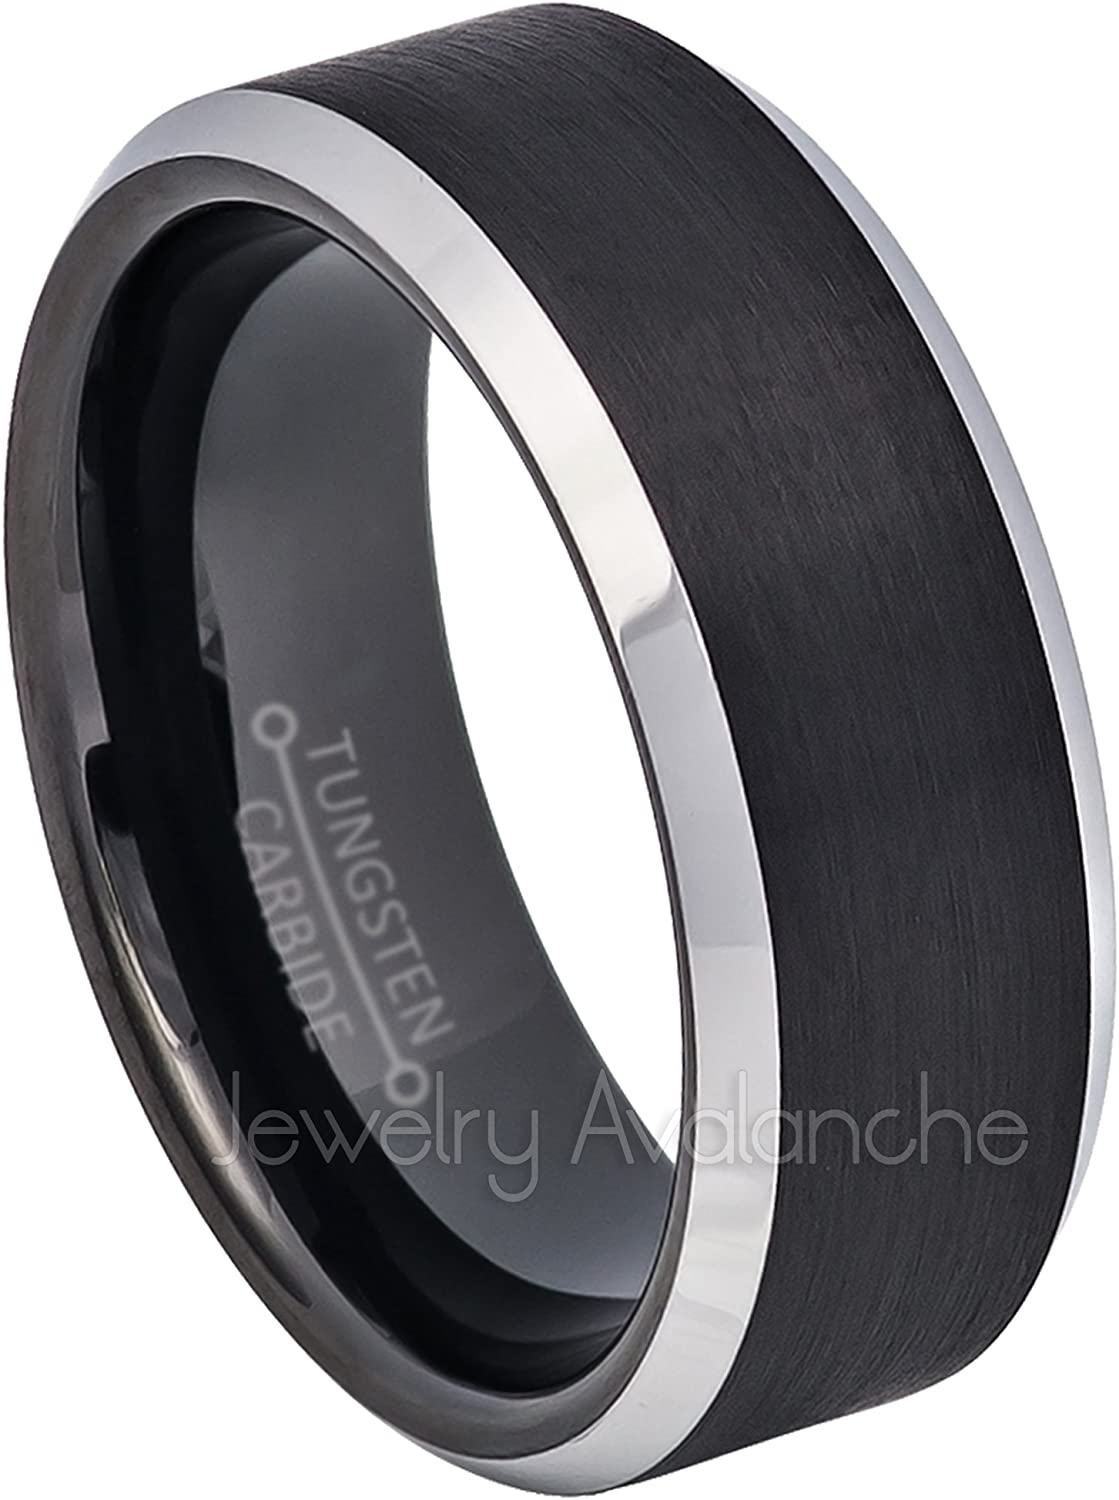 Jewelry Avalanche 2-Tone Tungsten Wedding Band 8mm Brushed Black IP Comfort Fit Beveled Tungsten Carbide Ring